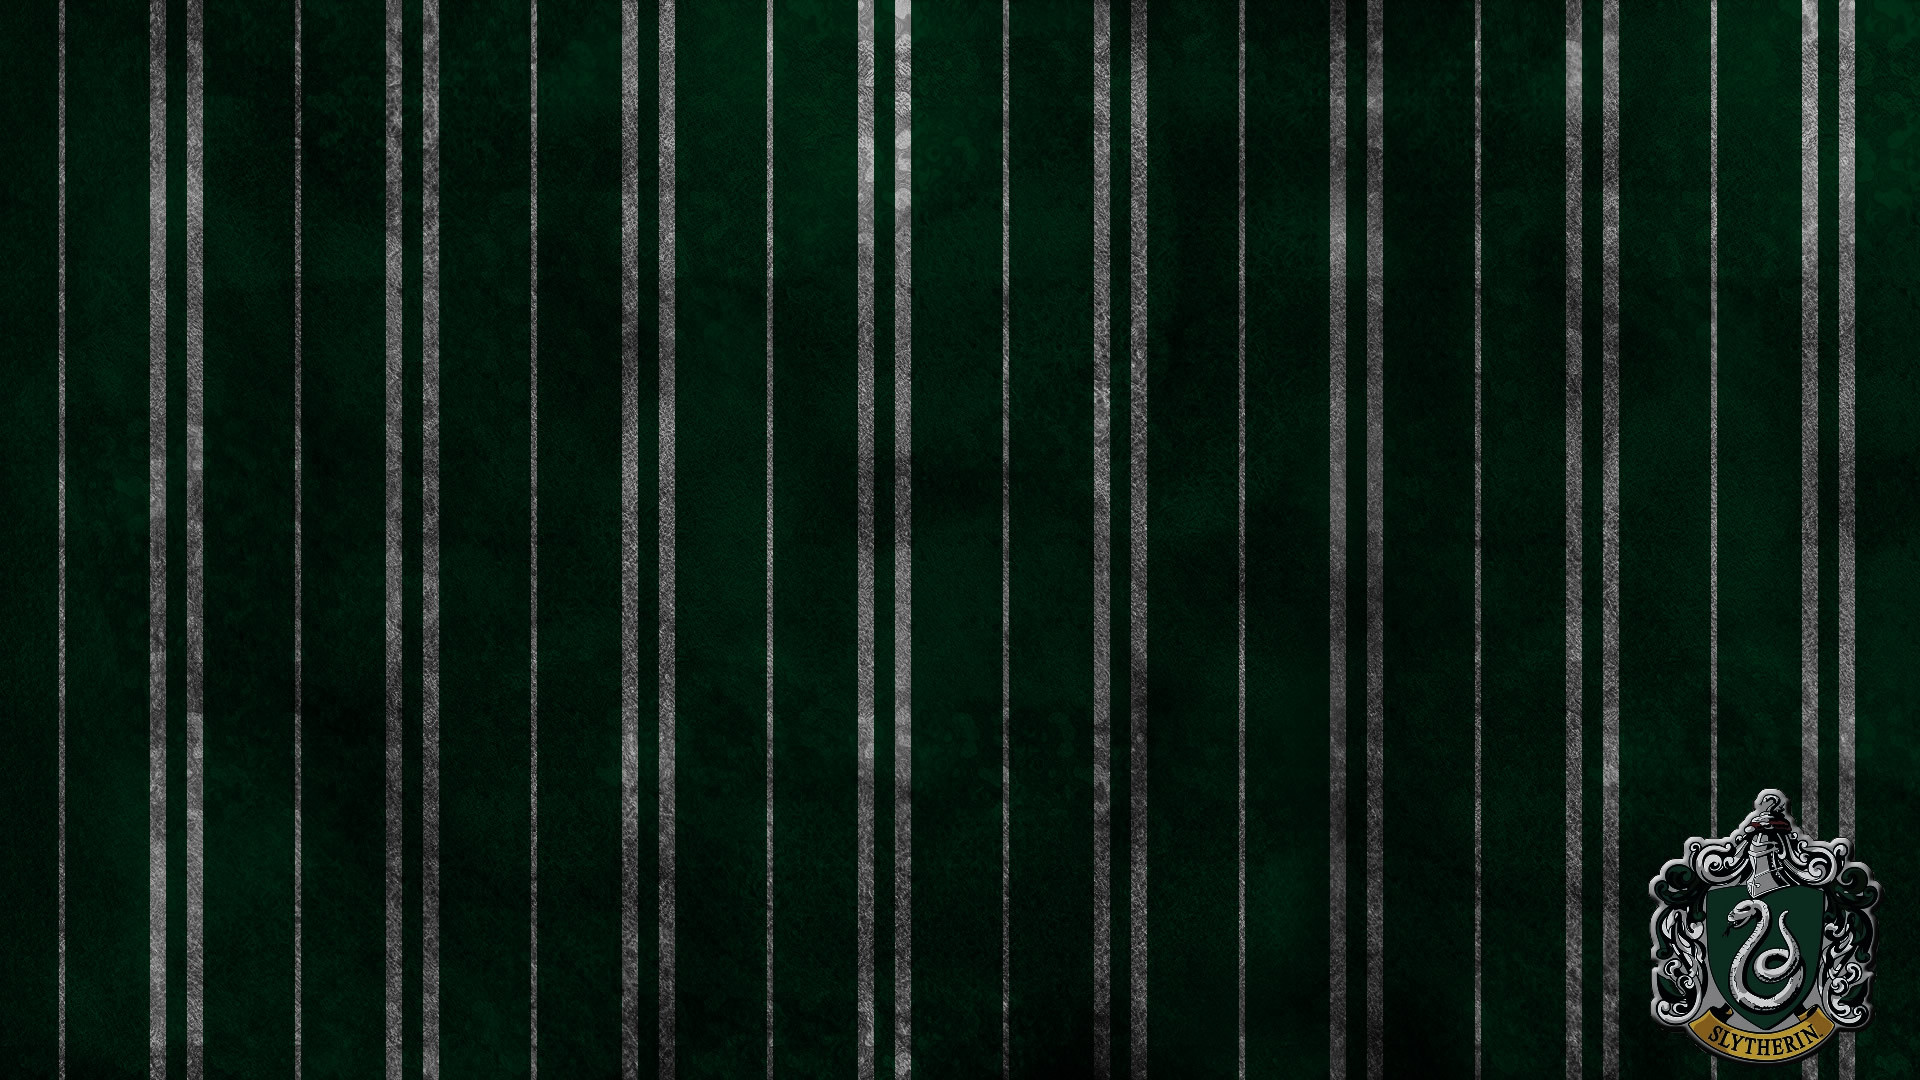 Slytherin Wallpaper 72 Images